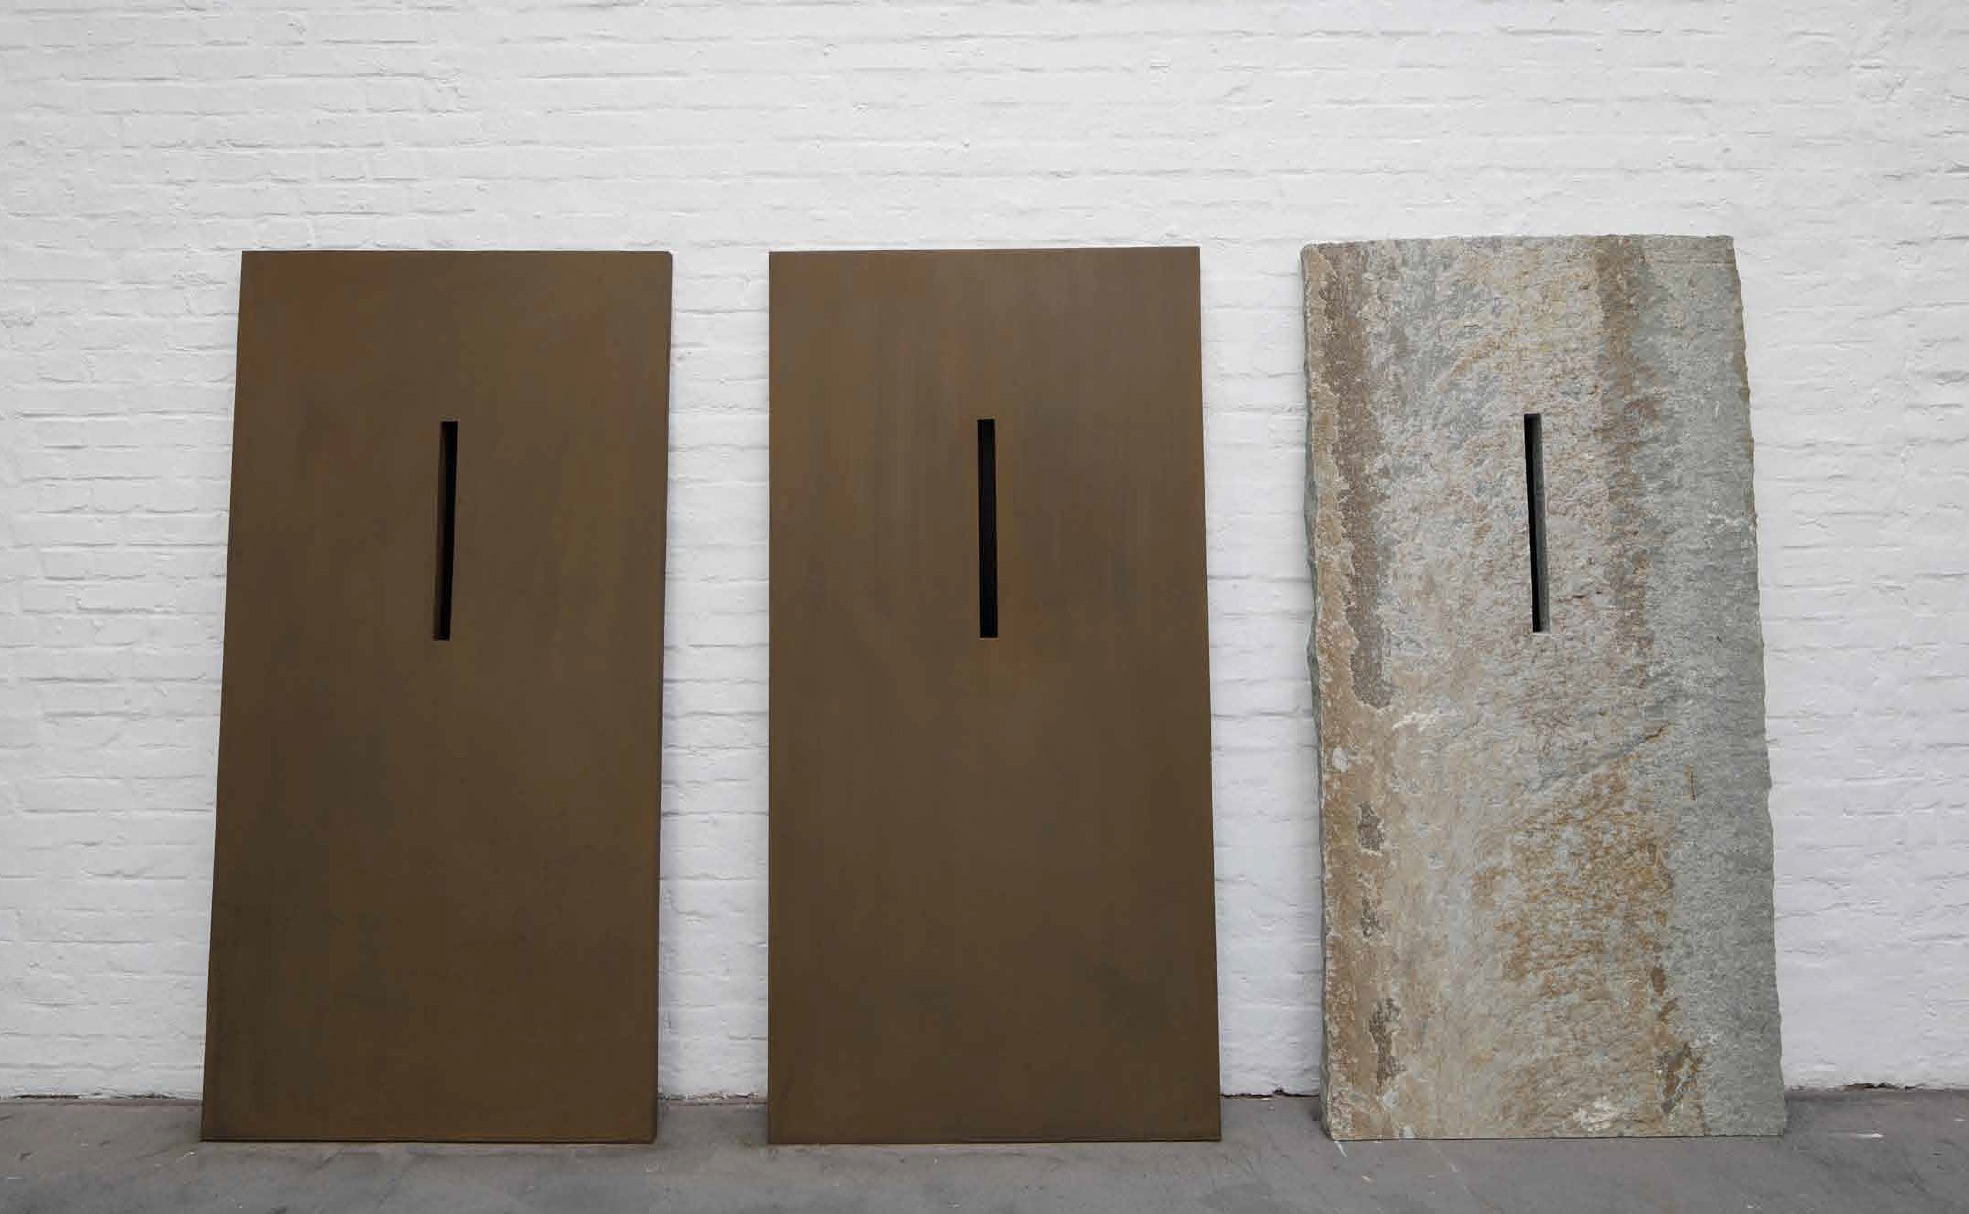 TRIPTYCHON (FOR ELIOT), 2004